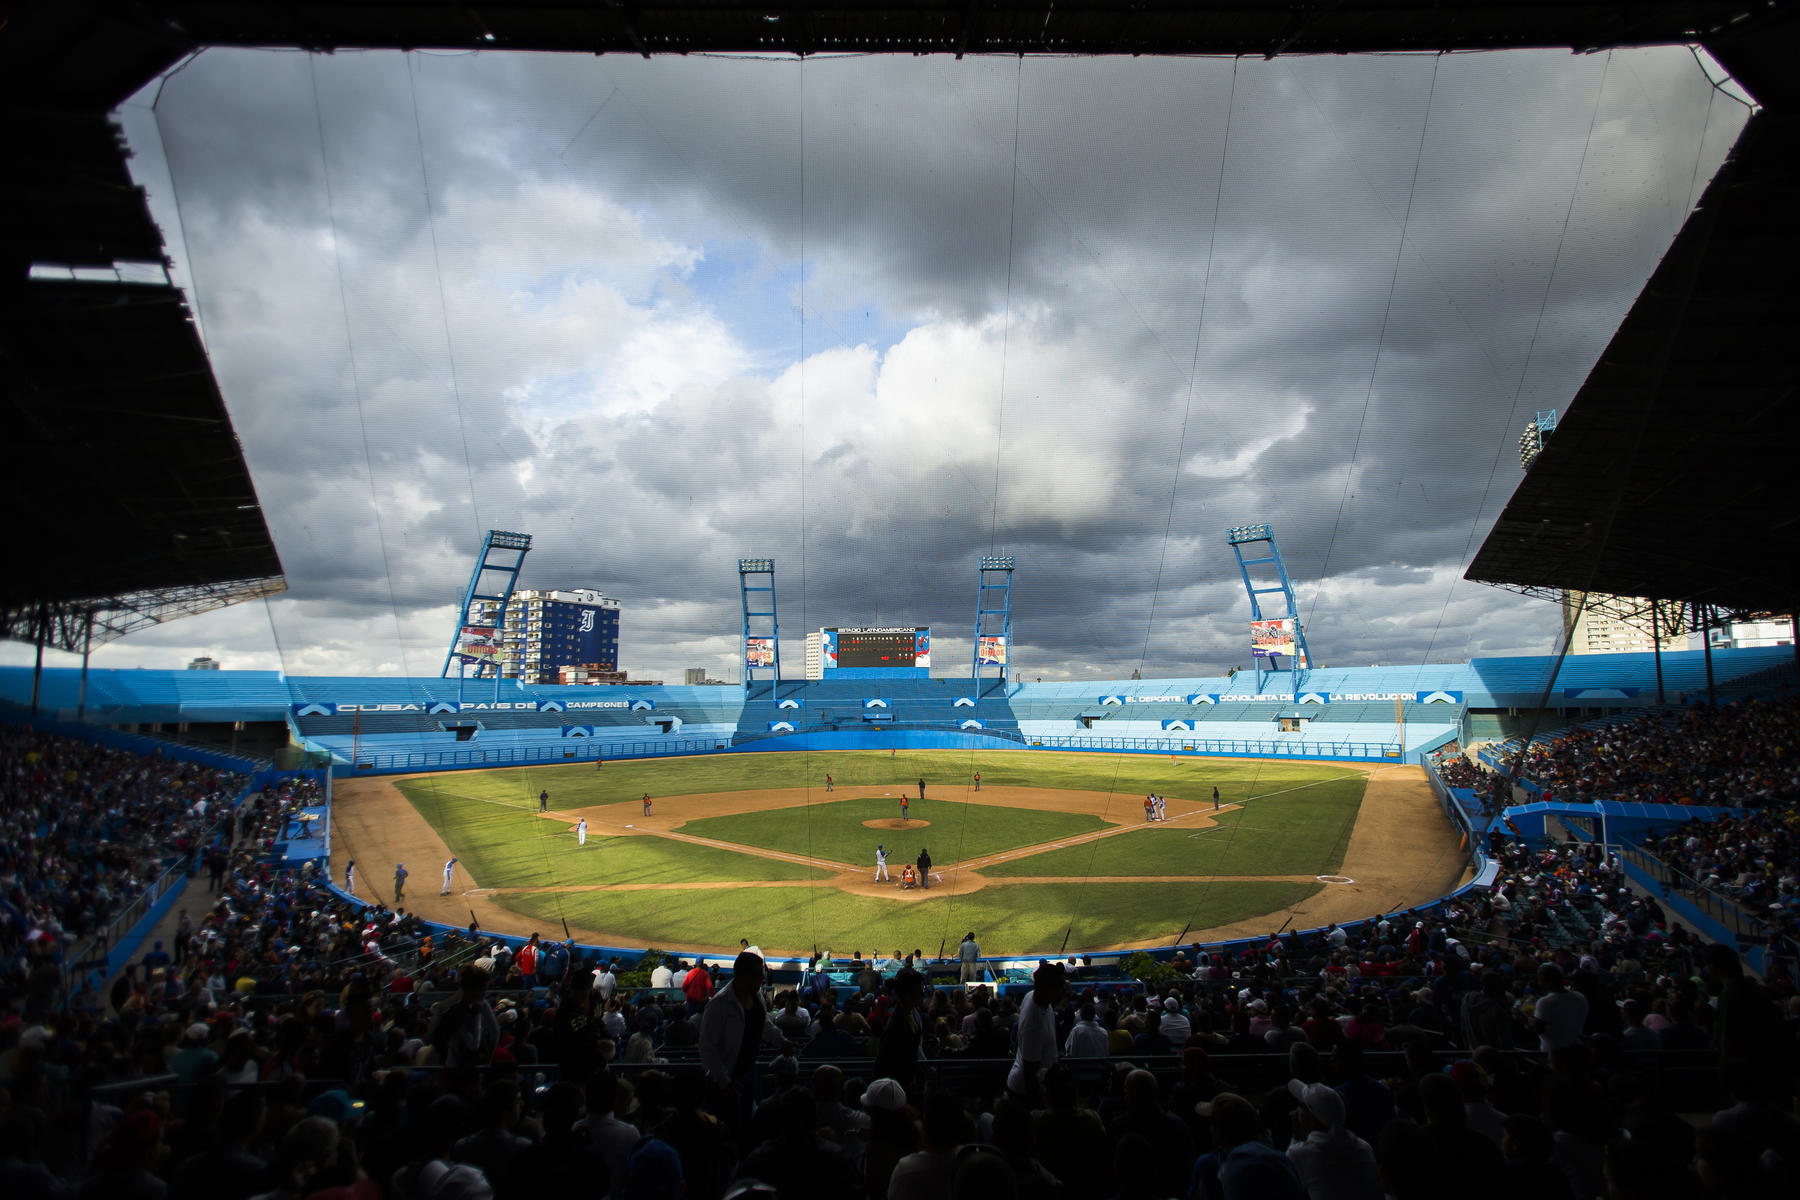 Fans fill the stadium during a game between Villa Clara and the Industriales at the Estadio Latinoamericano on January 18, 2014 in Havana, Cuba. The stadium, formerly known as Gran Estadio de La Habana, was built in 1946 and played host to legendary Cuban Winter League games throughout the 1950s. (Jean Fruth / National Baseball Hall of Fame)